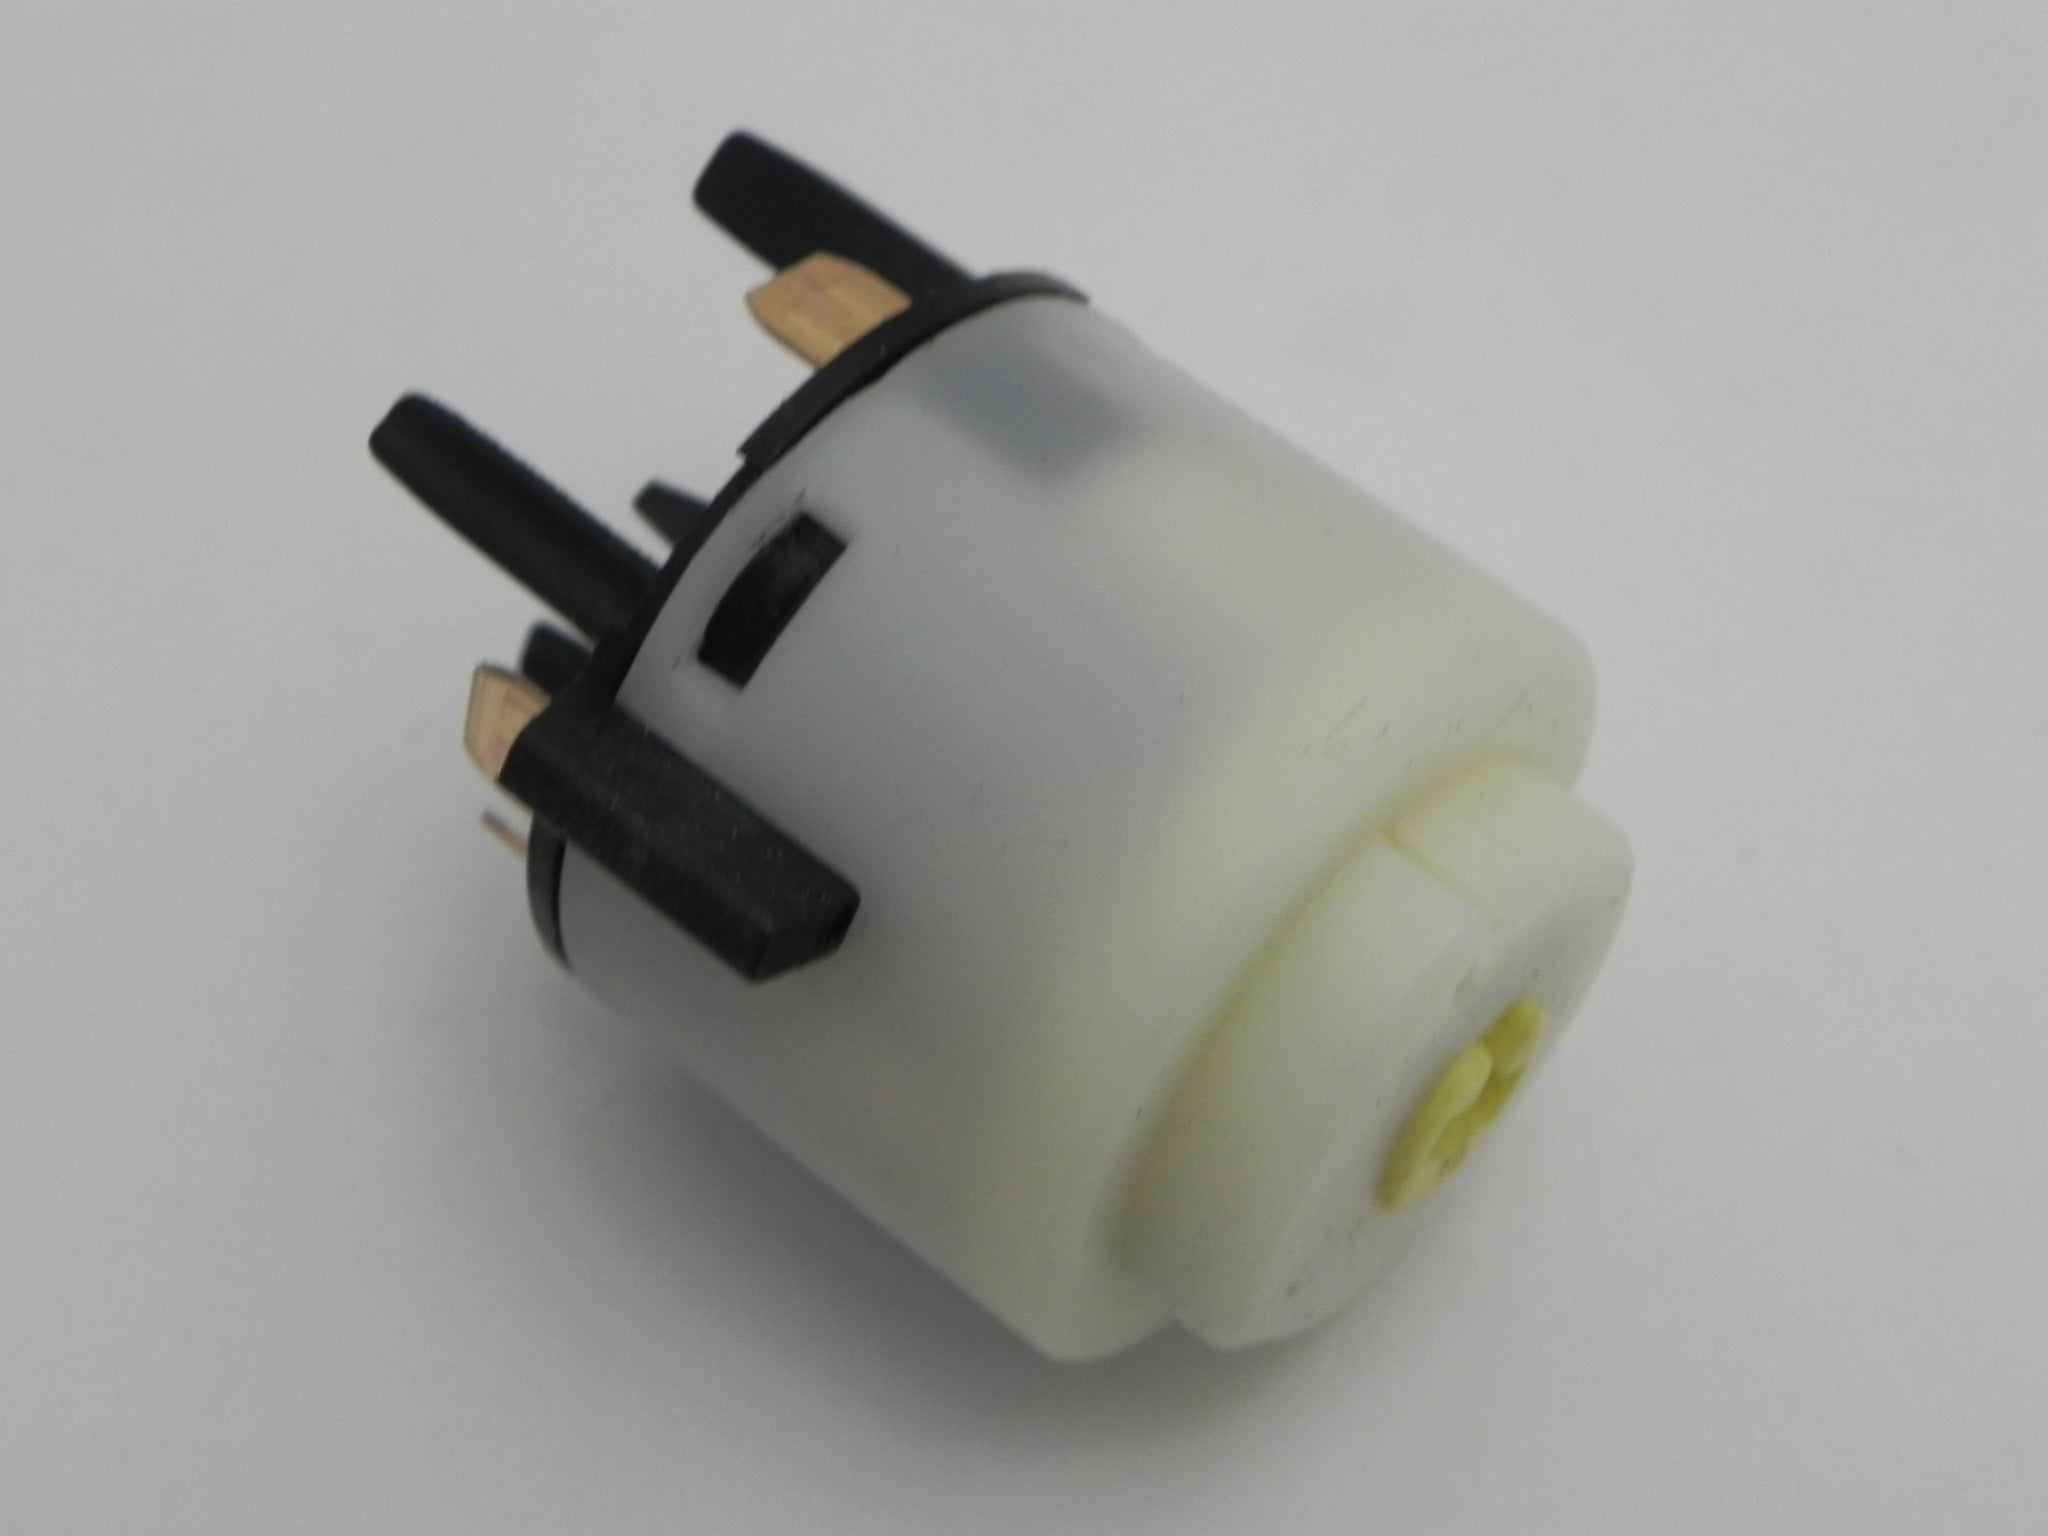 Porsche 911 912 930 Electrical Page 3 Aase Sales Parts 89 Carrera Fuse Box Diagram New Boxster Ignition Switch 1997 05